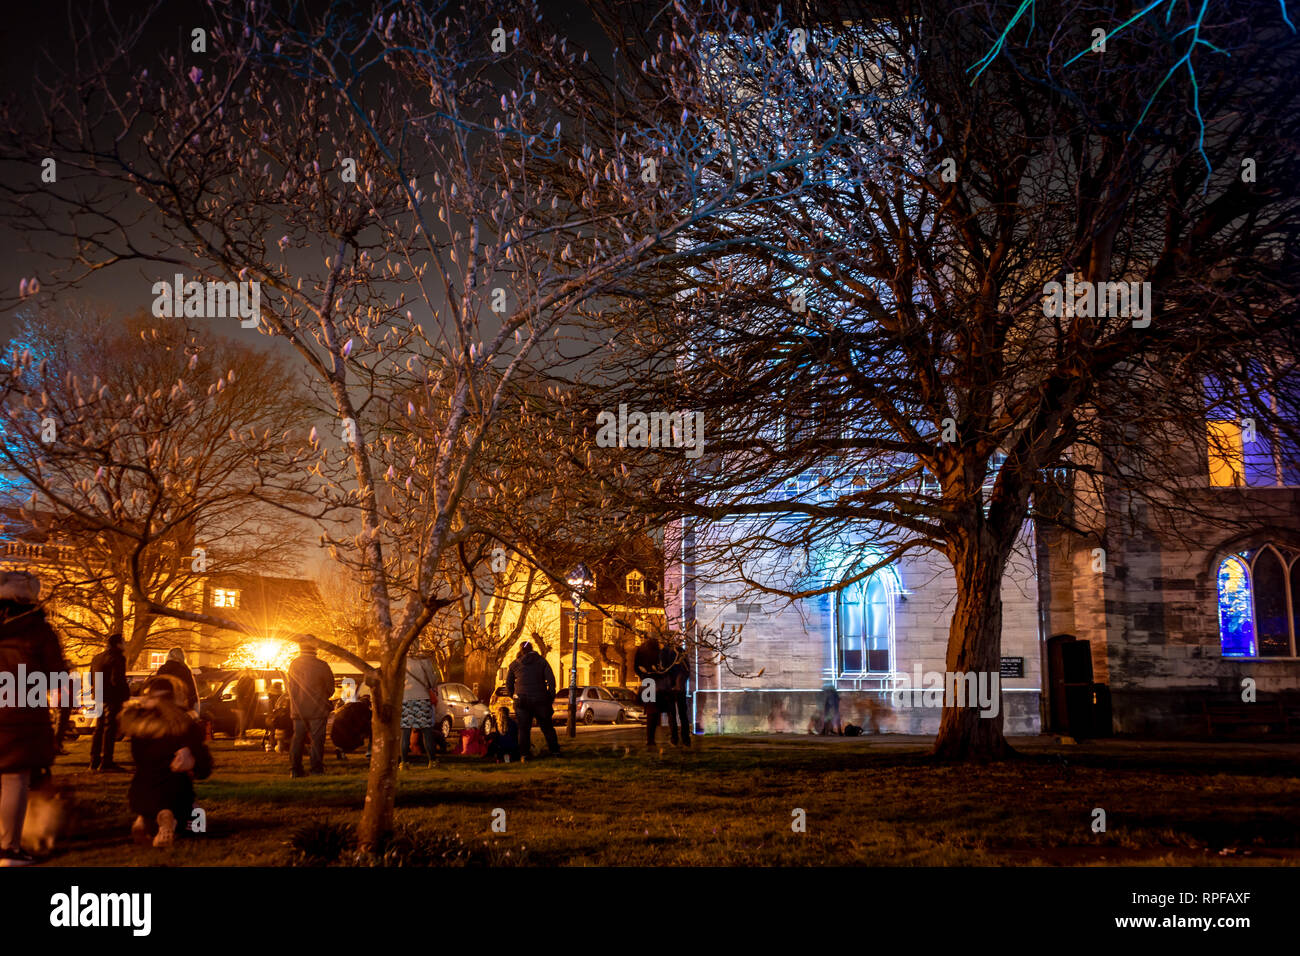 Poole, UK. 21st Feb, 2019. Poole, Dorset. 21st February 2019. Hundreds of visitors head to Poole Quay and town centre to see the light and art installations as part of the 'Light Up Poole' arts festival. Lottery and Arts Council England funded, the free night time event carries on until the 23rd February in Poole. Credit: Thomas Faull/Alamy Live News Stock Photo